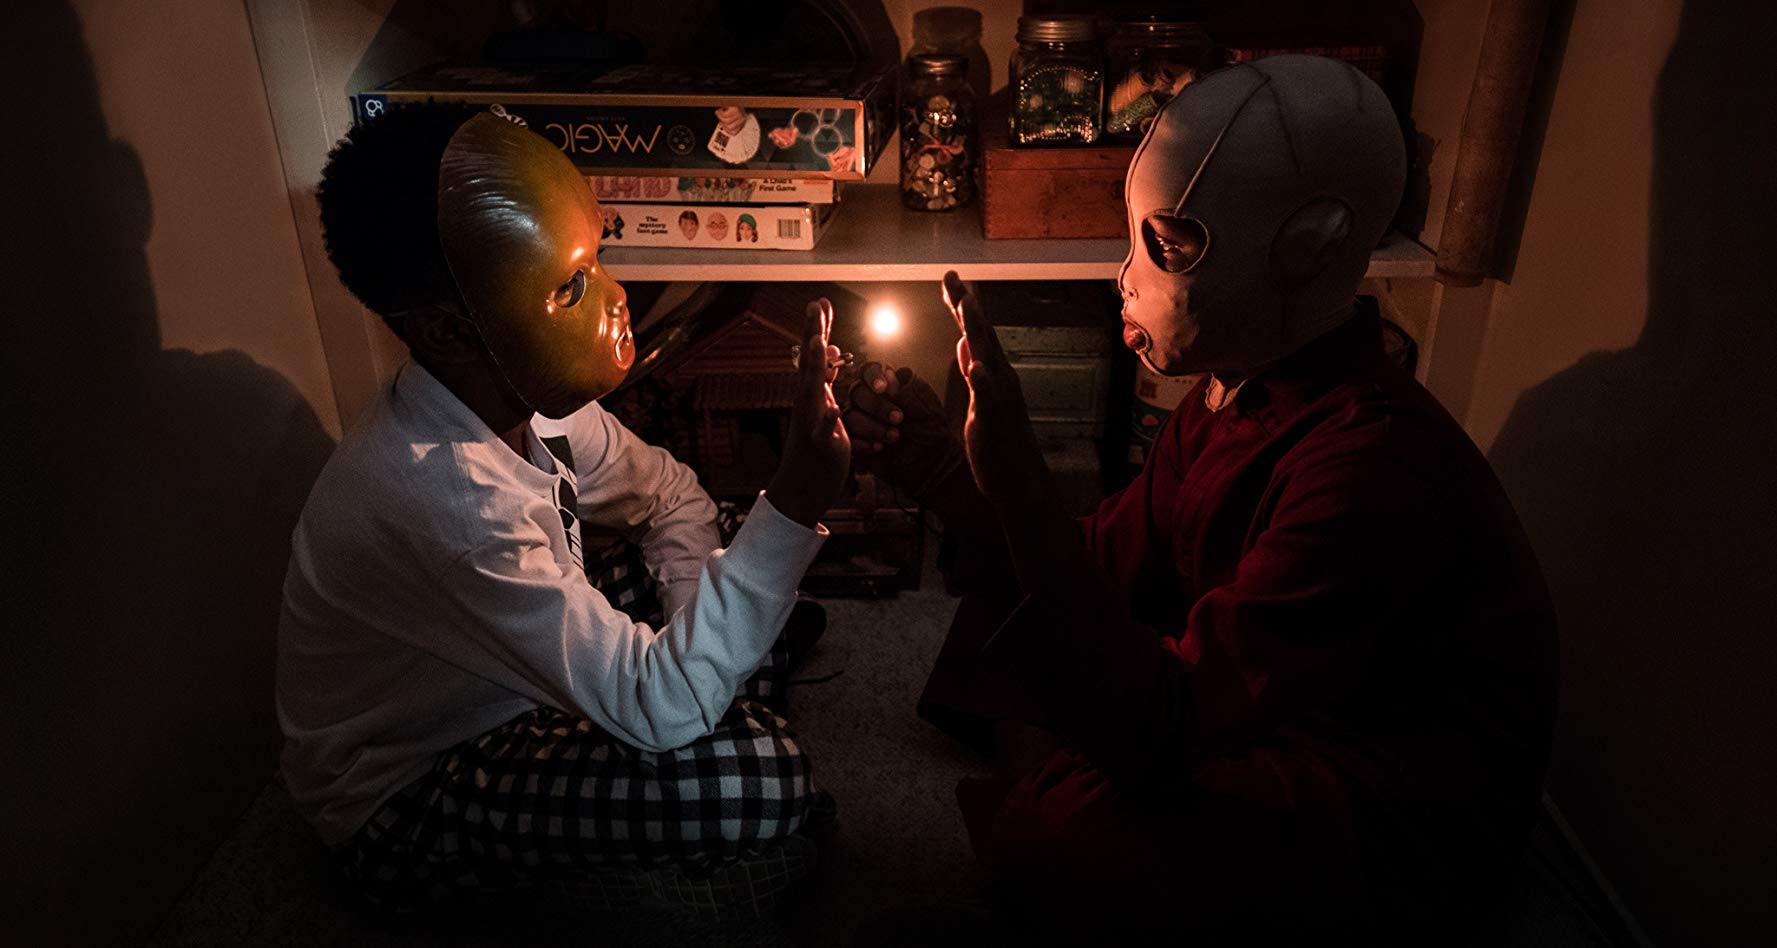 Jason and Pluto sit facing each other in a closet, playing with fire.